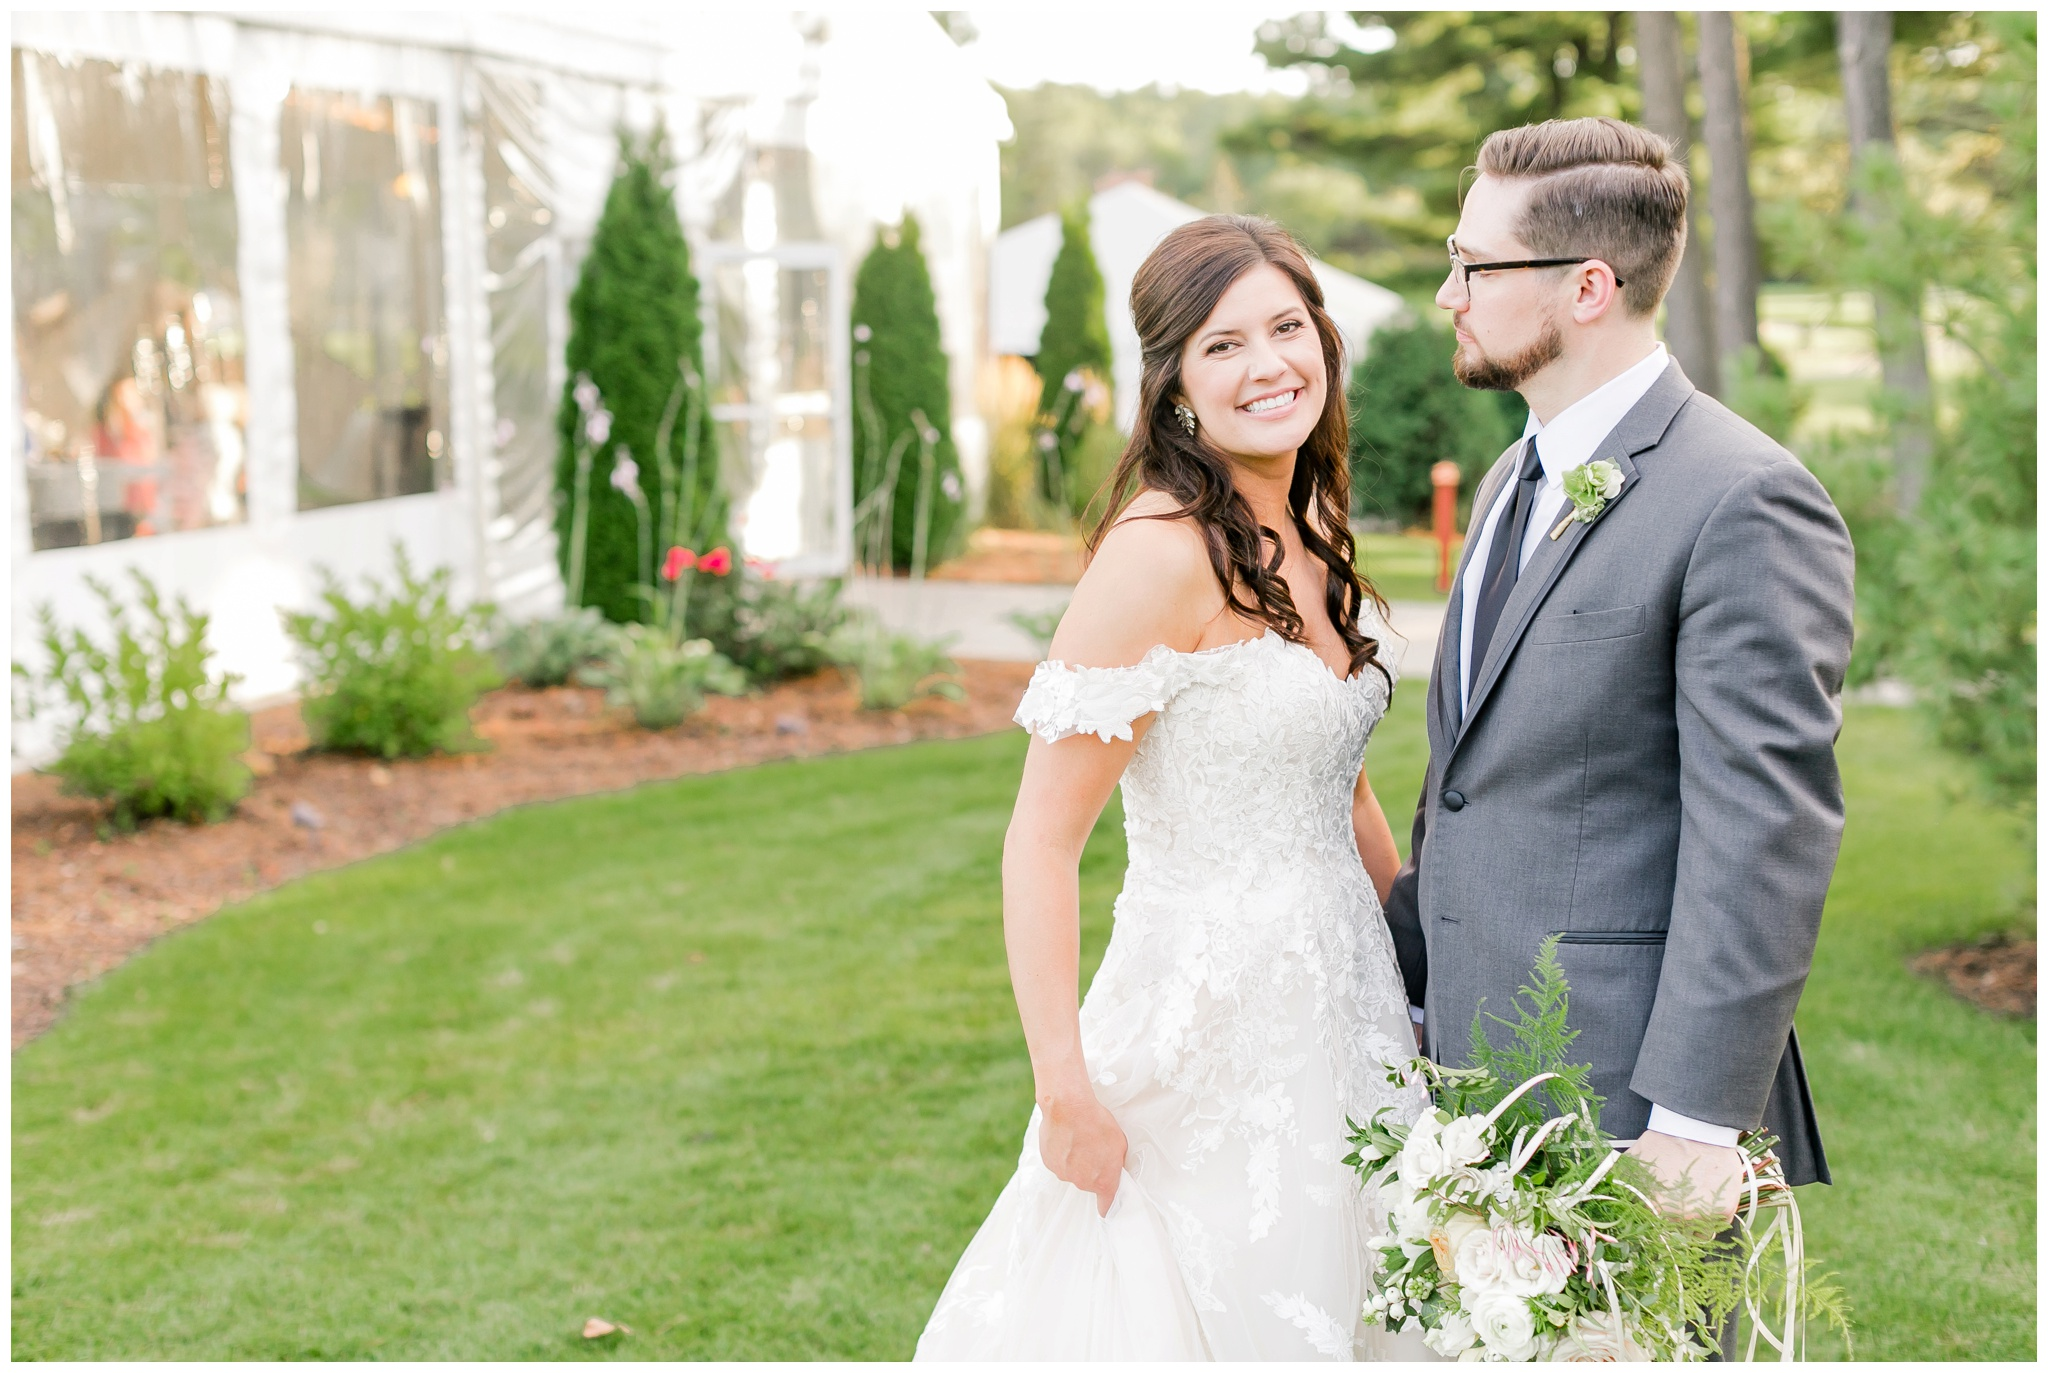 bishops_bay_country_club_wedding_middleton_wisconsin_caynay_photo_4730.jpg